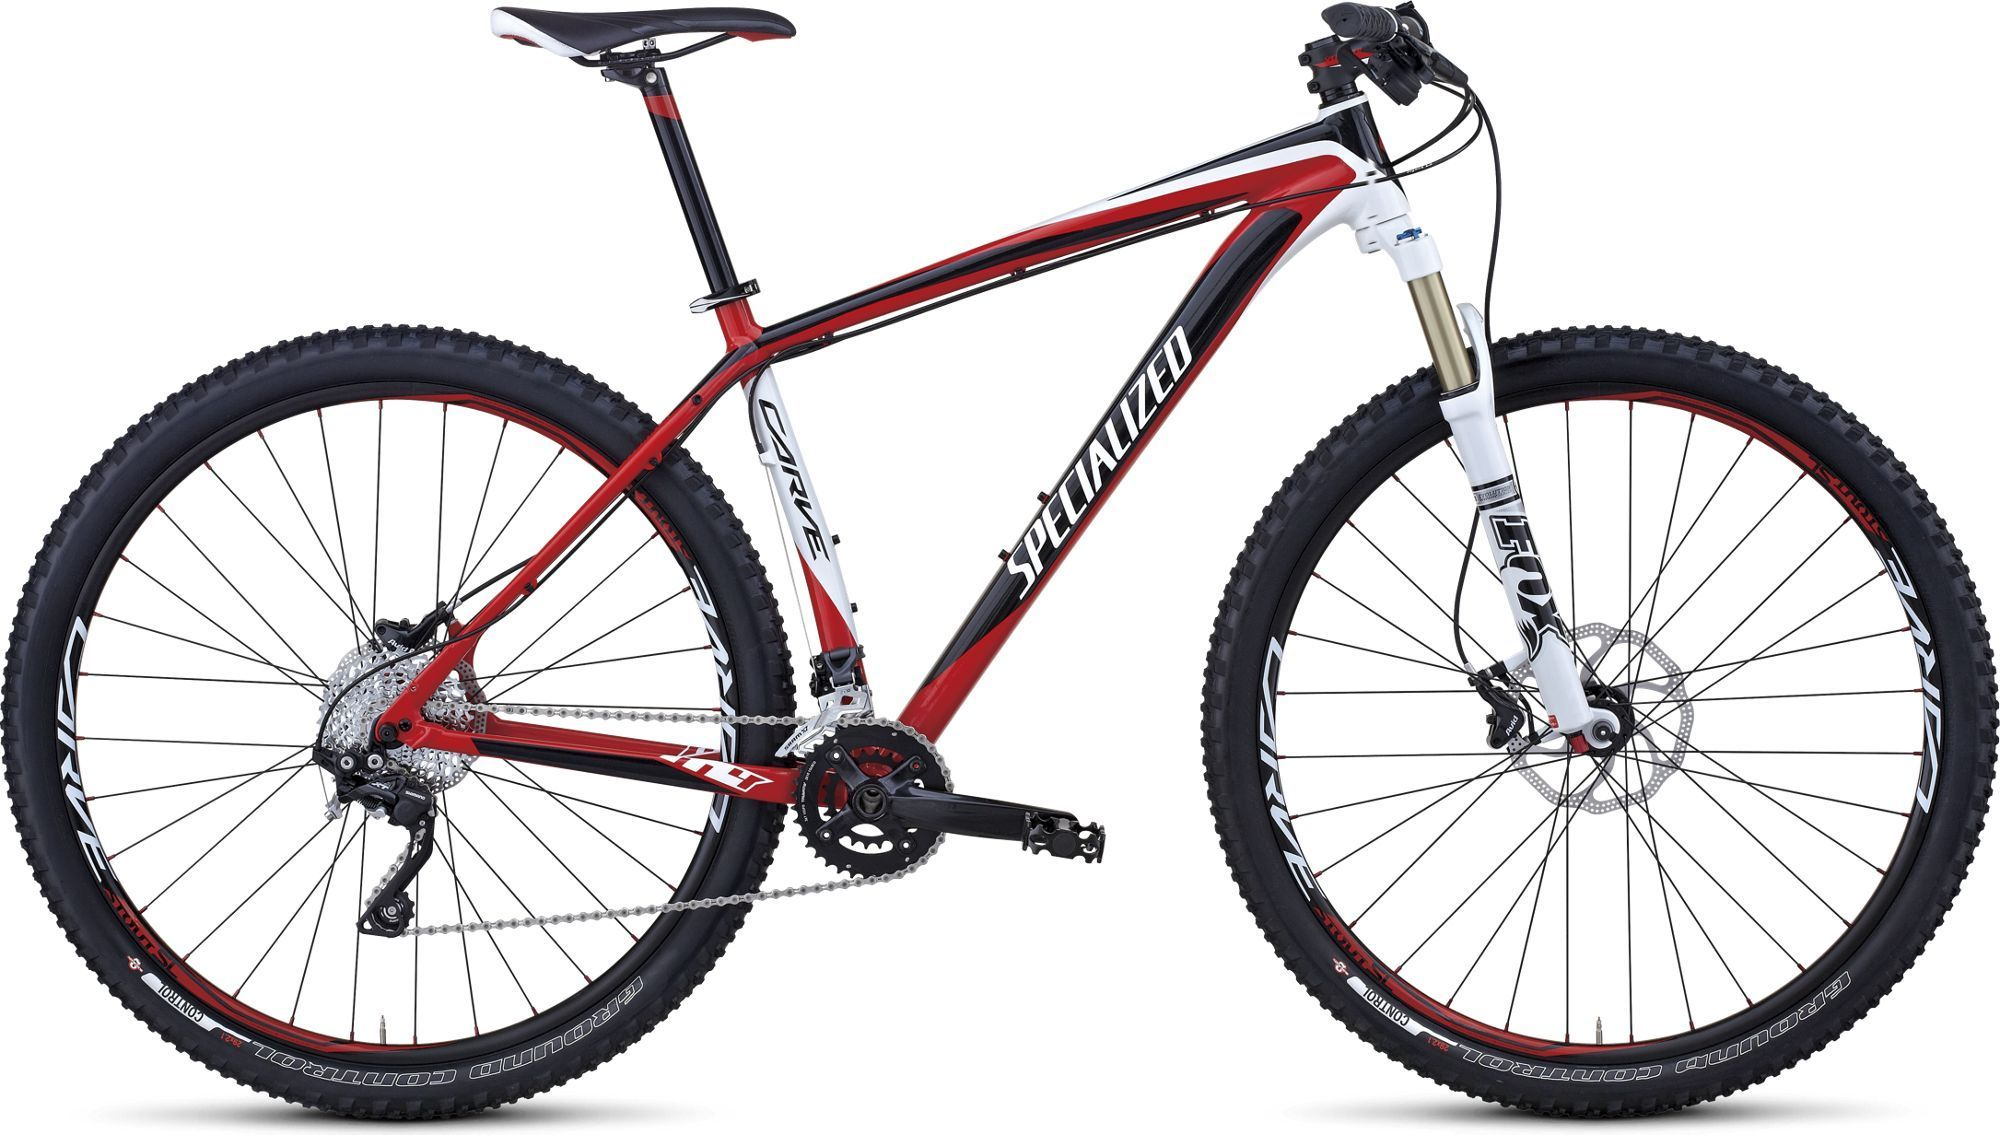 Specialized Carve Pro 2013 review - The Bike List